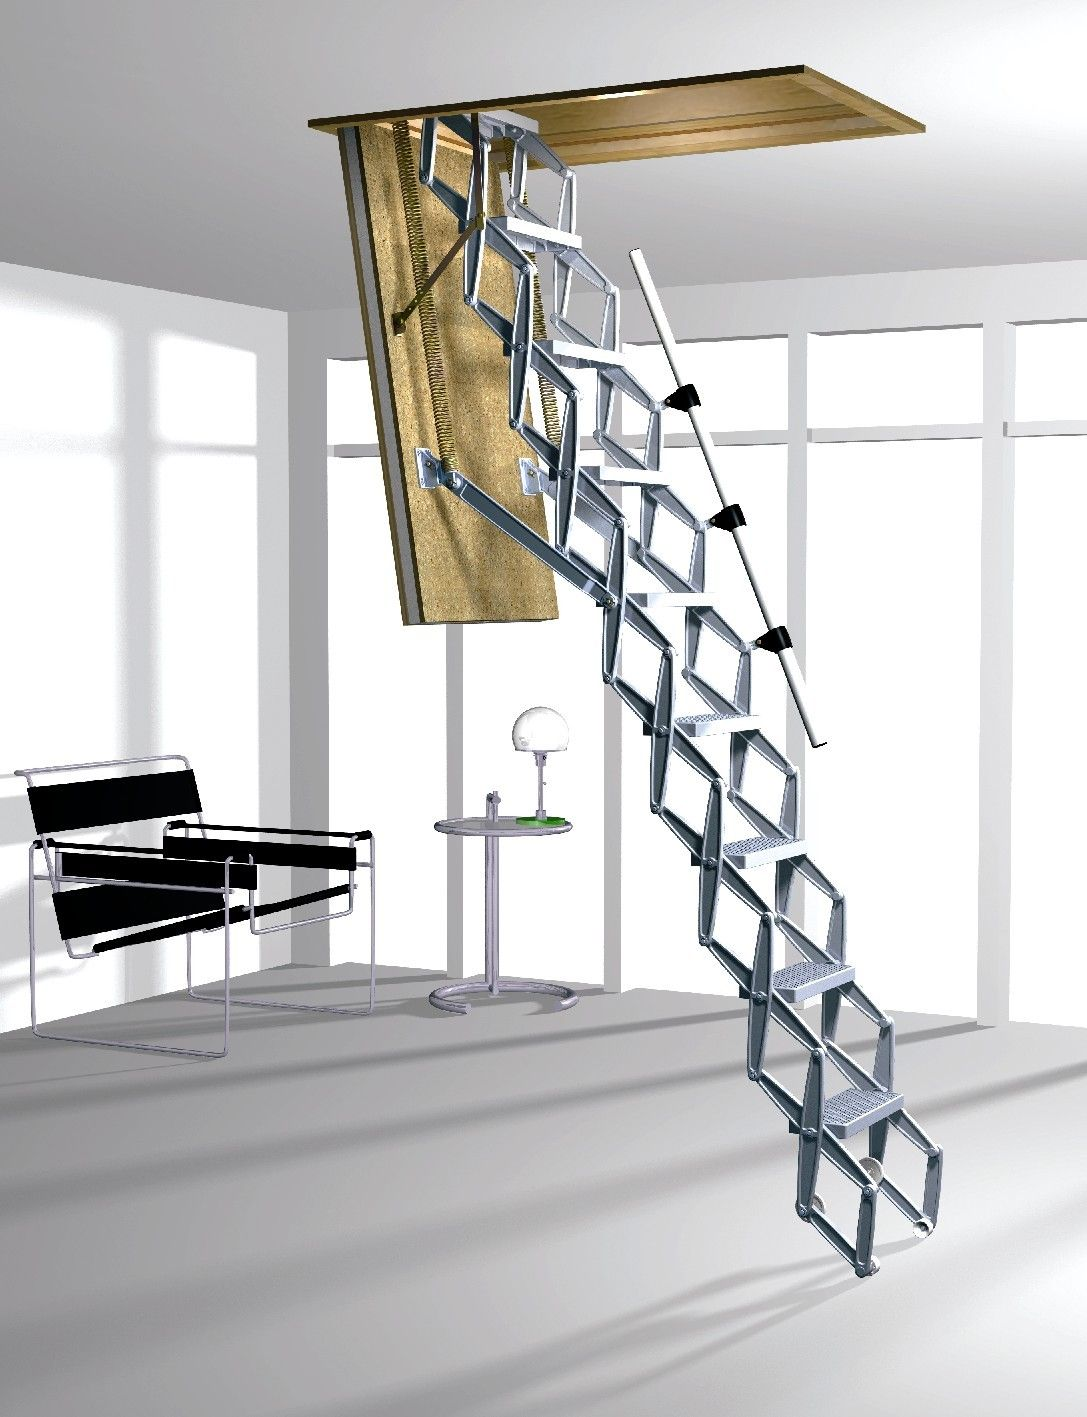 Best Image Result For Decorative Sliding Ladders Attic Stairs 400 x 300